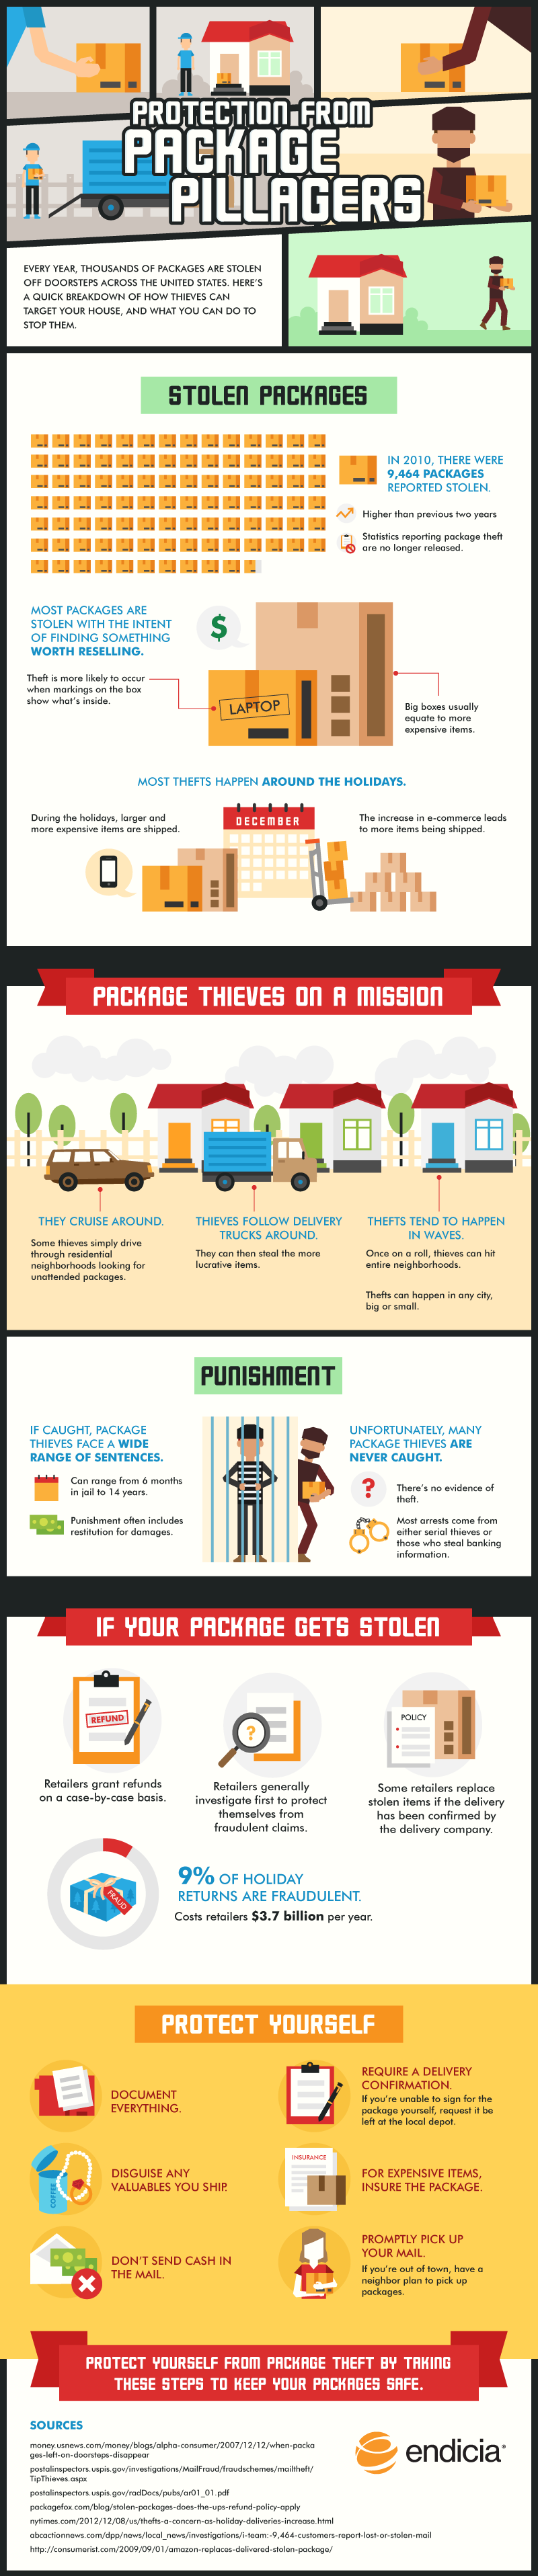 infographic-protect-package-thieves